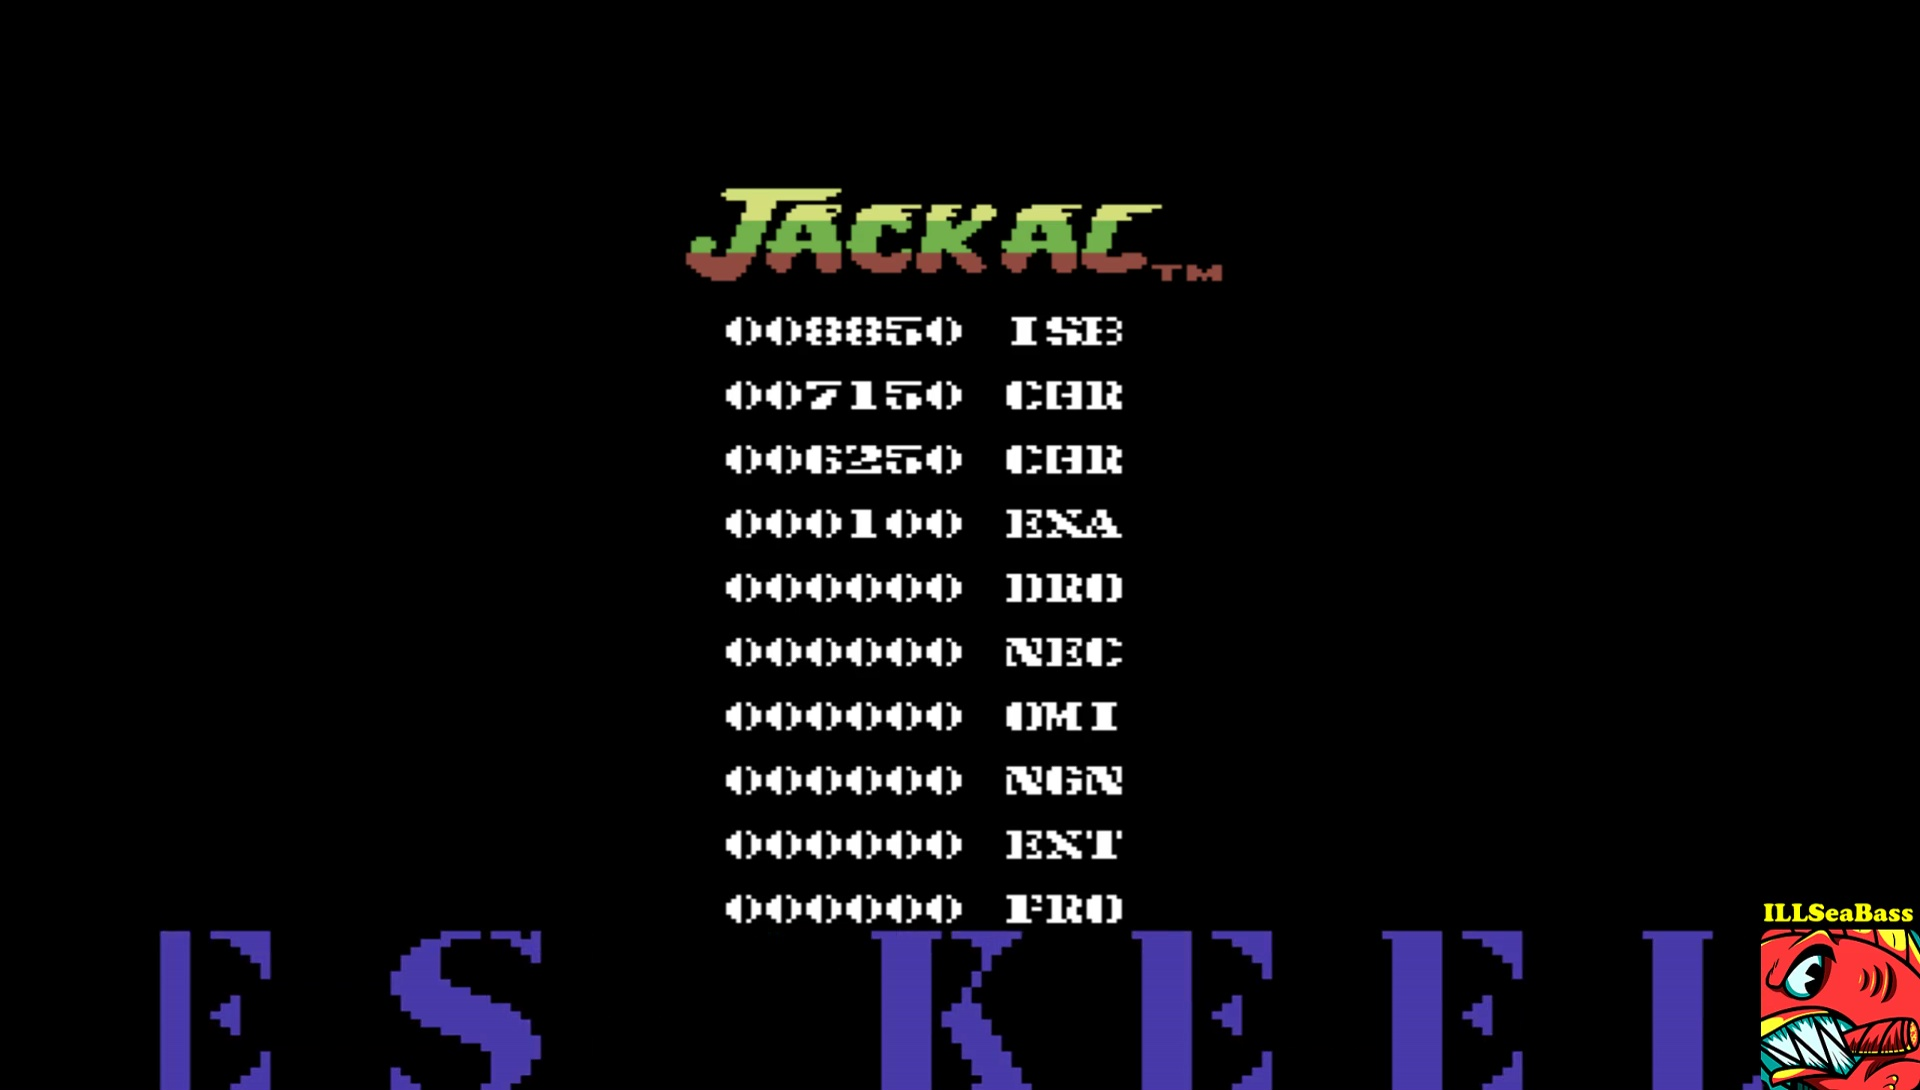 ILLSeaBass: Jackal [UK Version] (Commodore 64 Emulated) 8,850 points on 2017-04-10 21:31:35